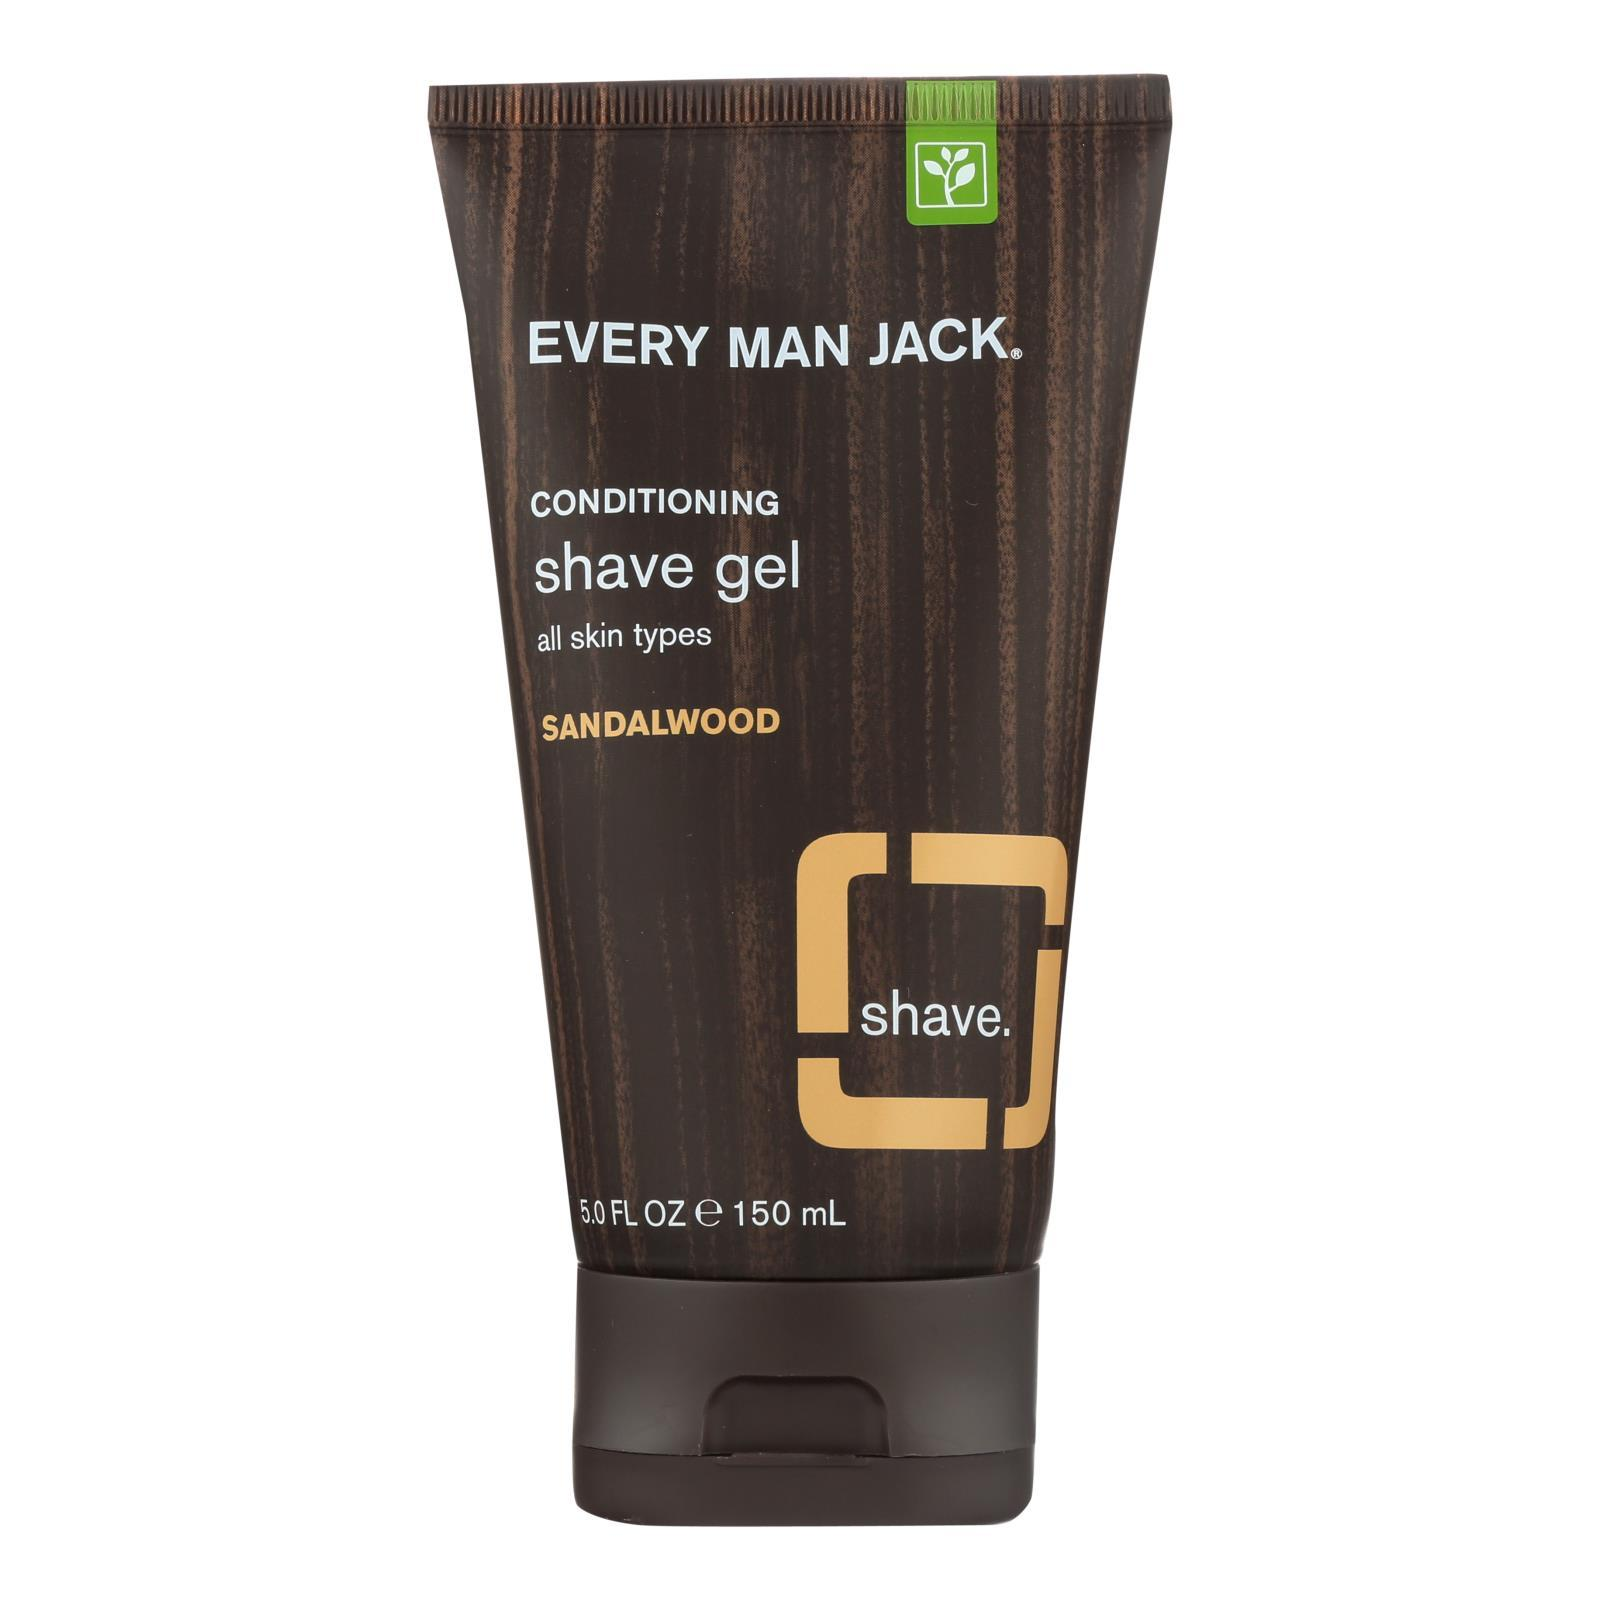 Every Man Jack Shave Gel - All Skin Types - Sandalwood - 5 Oz - BeeGreen